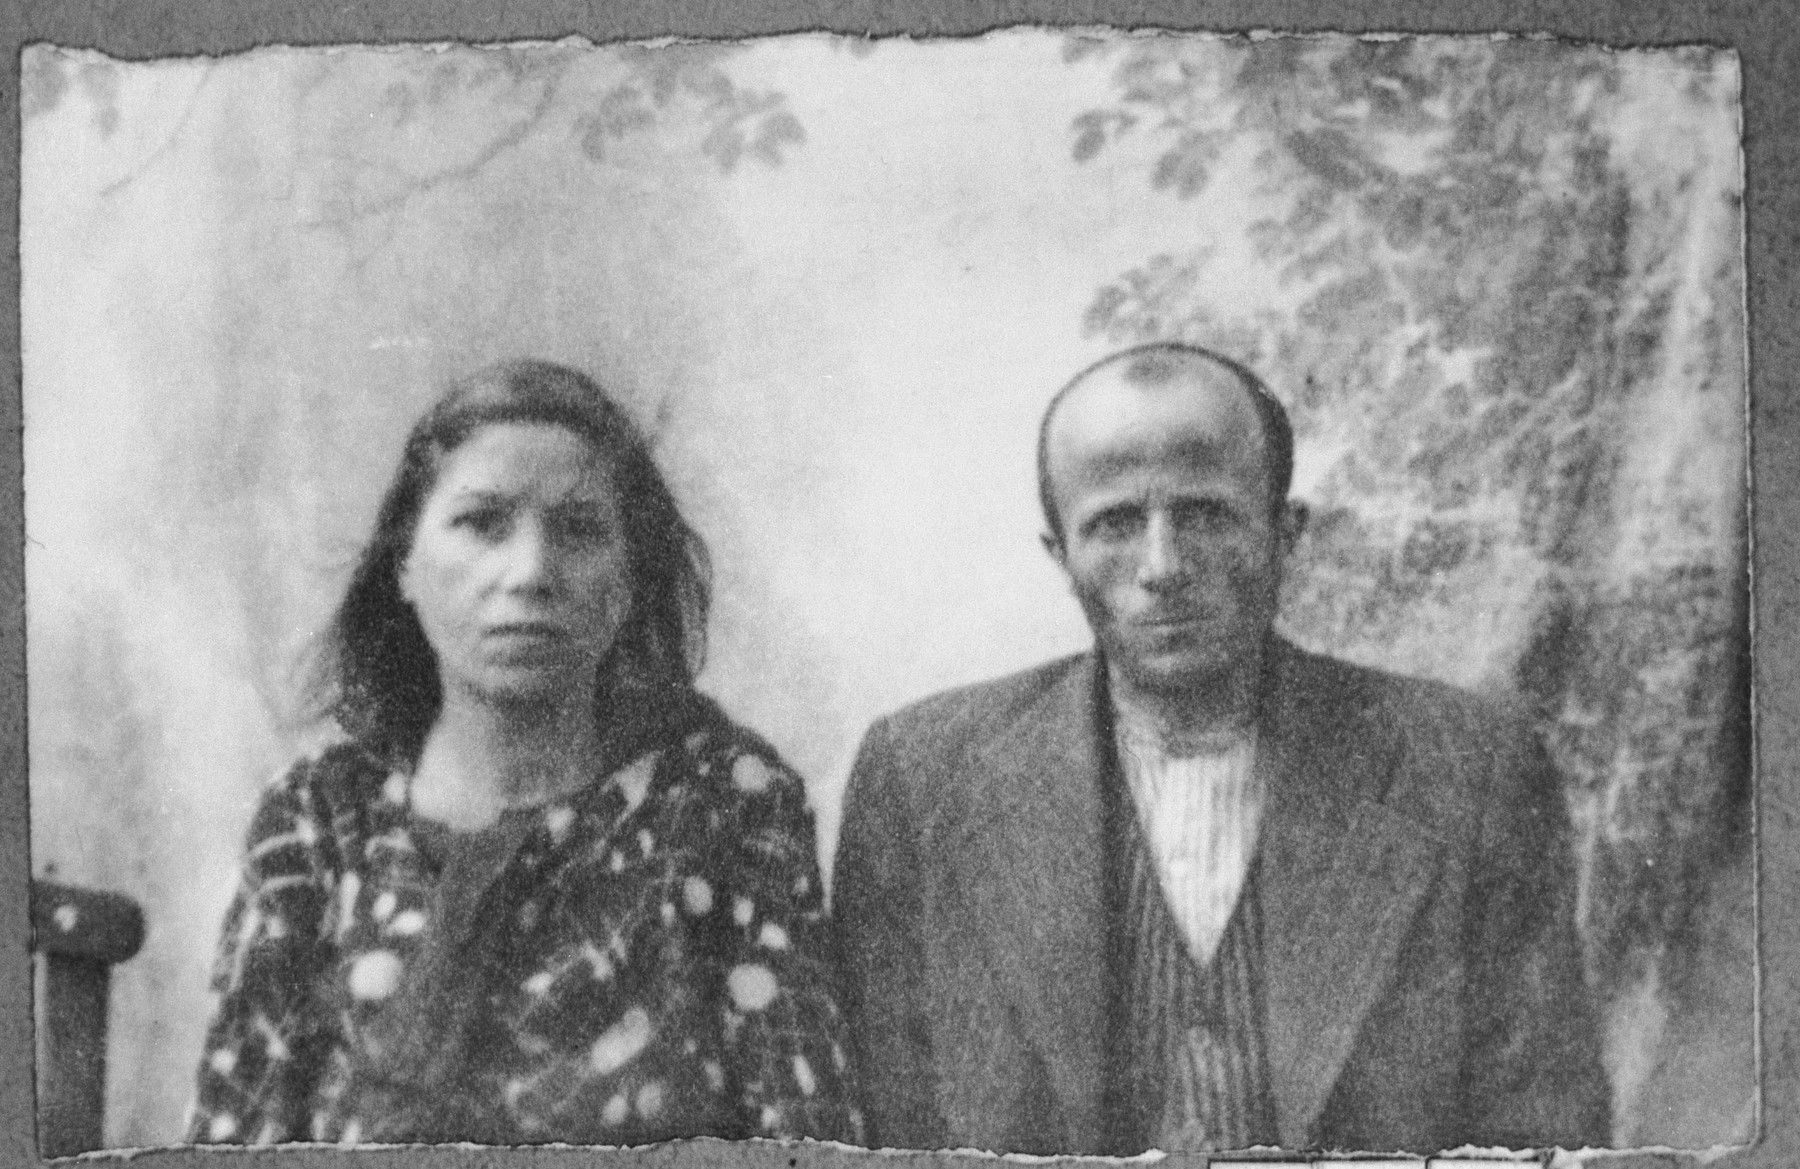 Portrait of Bohor Mayo, son of Samuel Mayo, and Bohor's wife, Sinora.  He was a second-hand dealer.  They lived at Zvornitska 27 in Bitola.